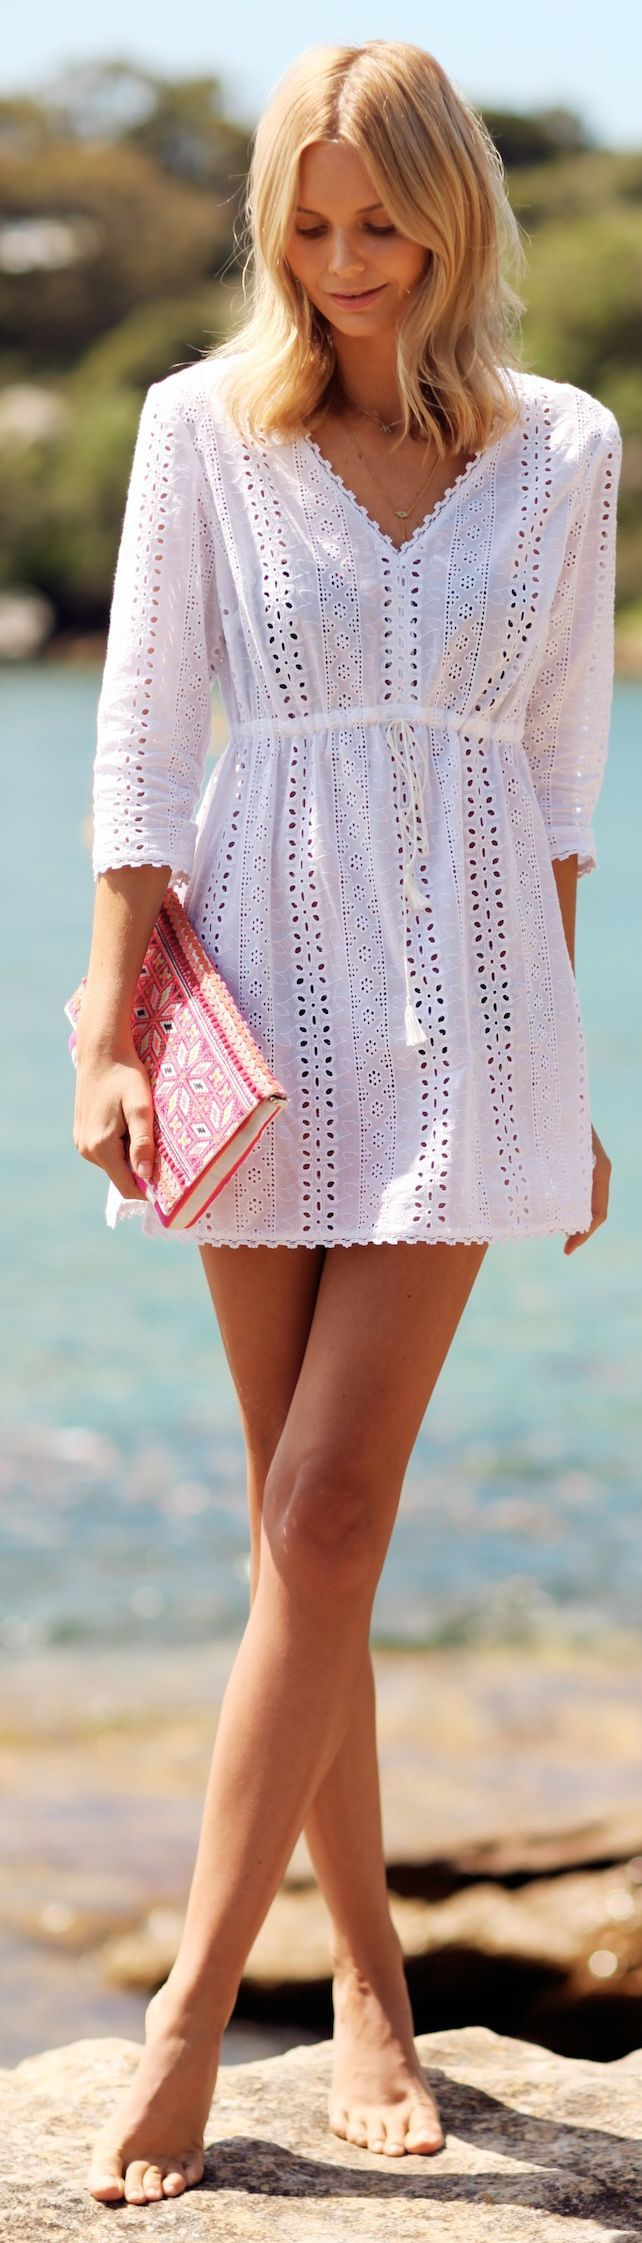 White 'broderie Anglaise' Tunic Dress                                                                             Source